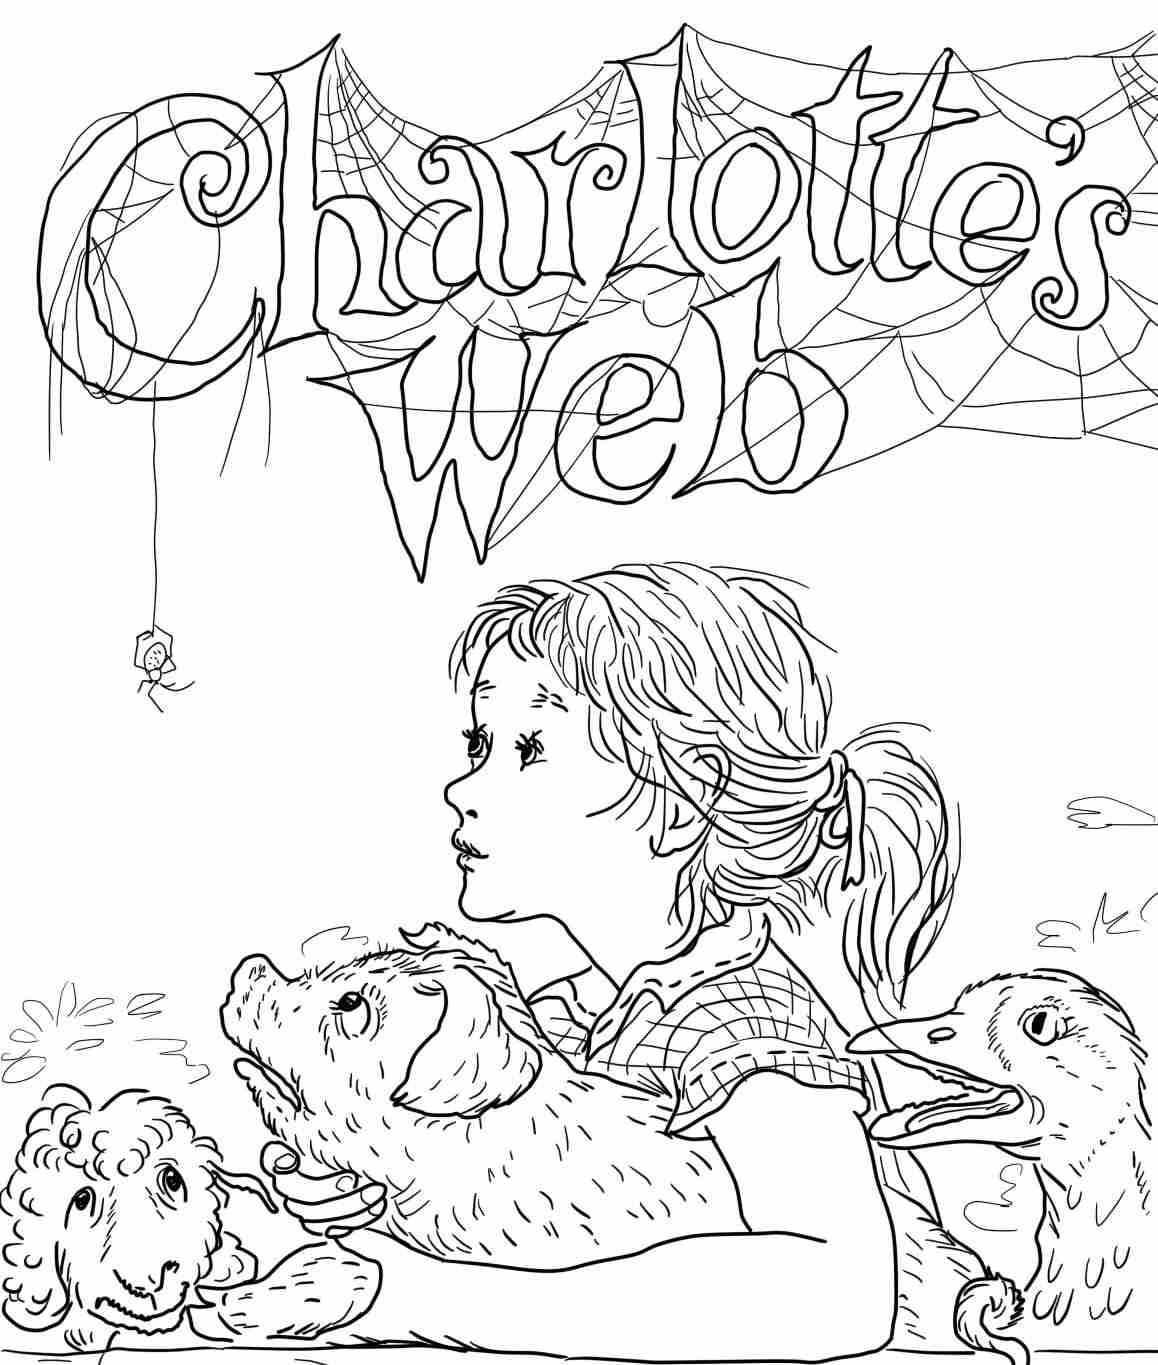 Charlotte's Web: Coloring and Activity Book and Crayons: Amazon.co ... | 1365x1158